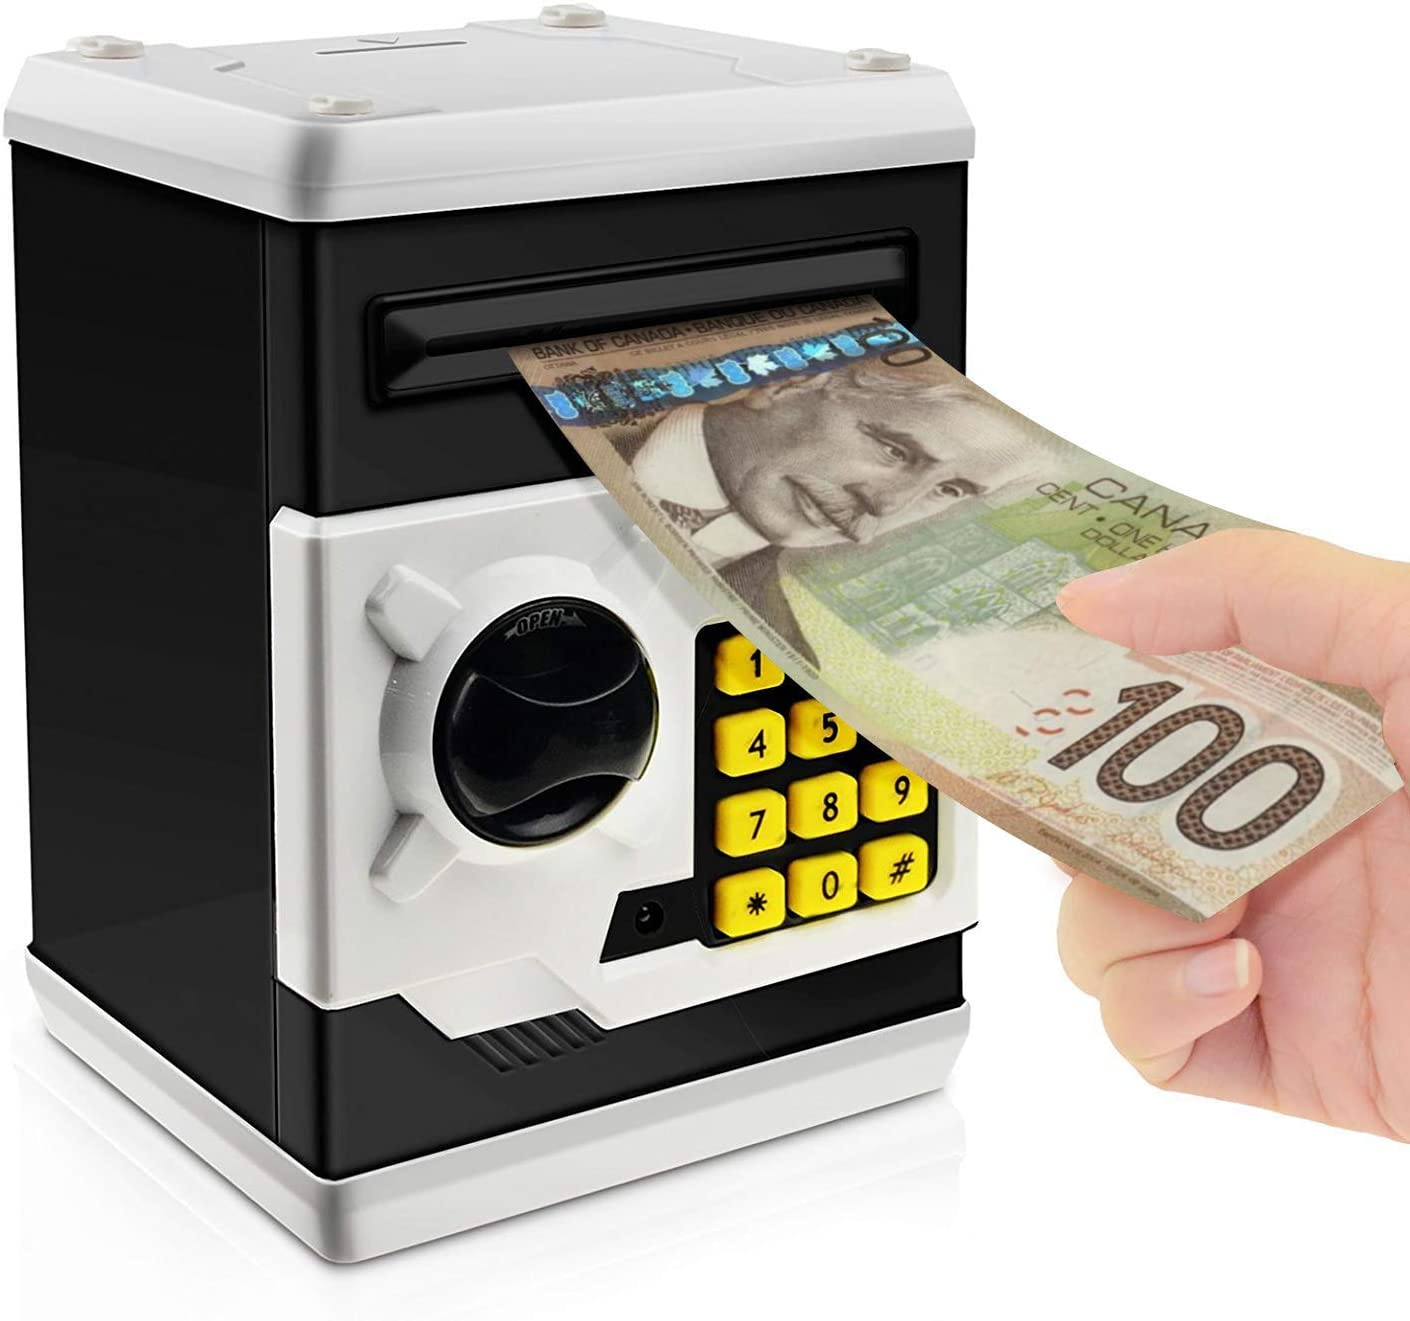 Black watata Childrens Cartoon Electronic Password Piggy Bank Mini ATM Bank Security Lock Smart Voice Prompt Automatic Roll Banknotes and Coins Best Childrens Gifts Fun Toys Birthday Gifts